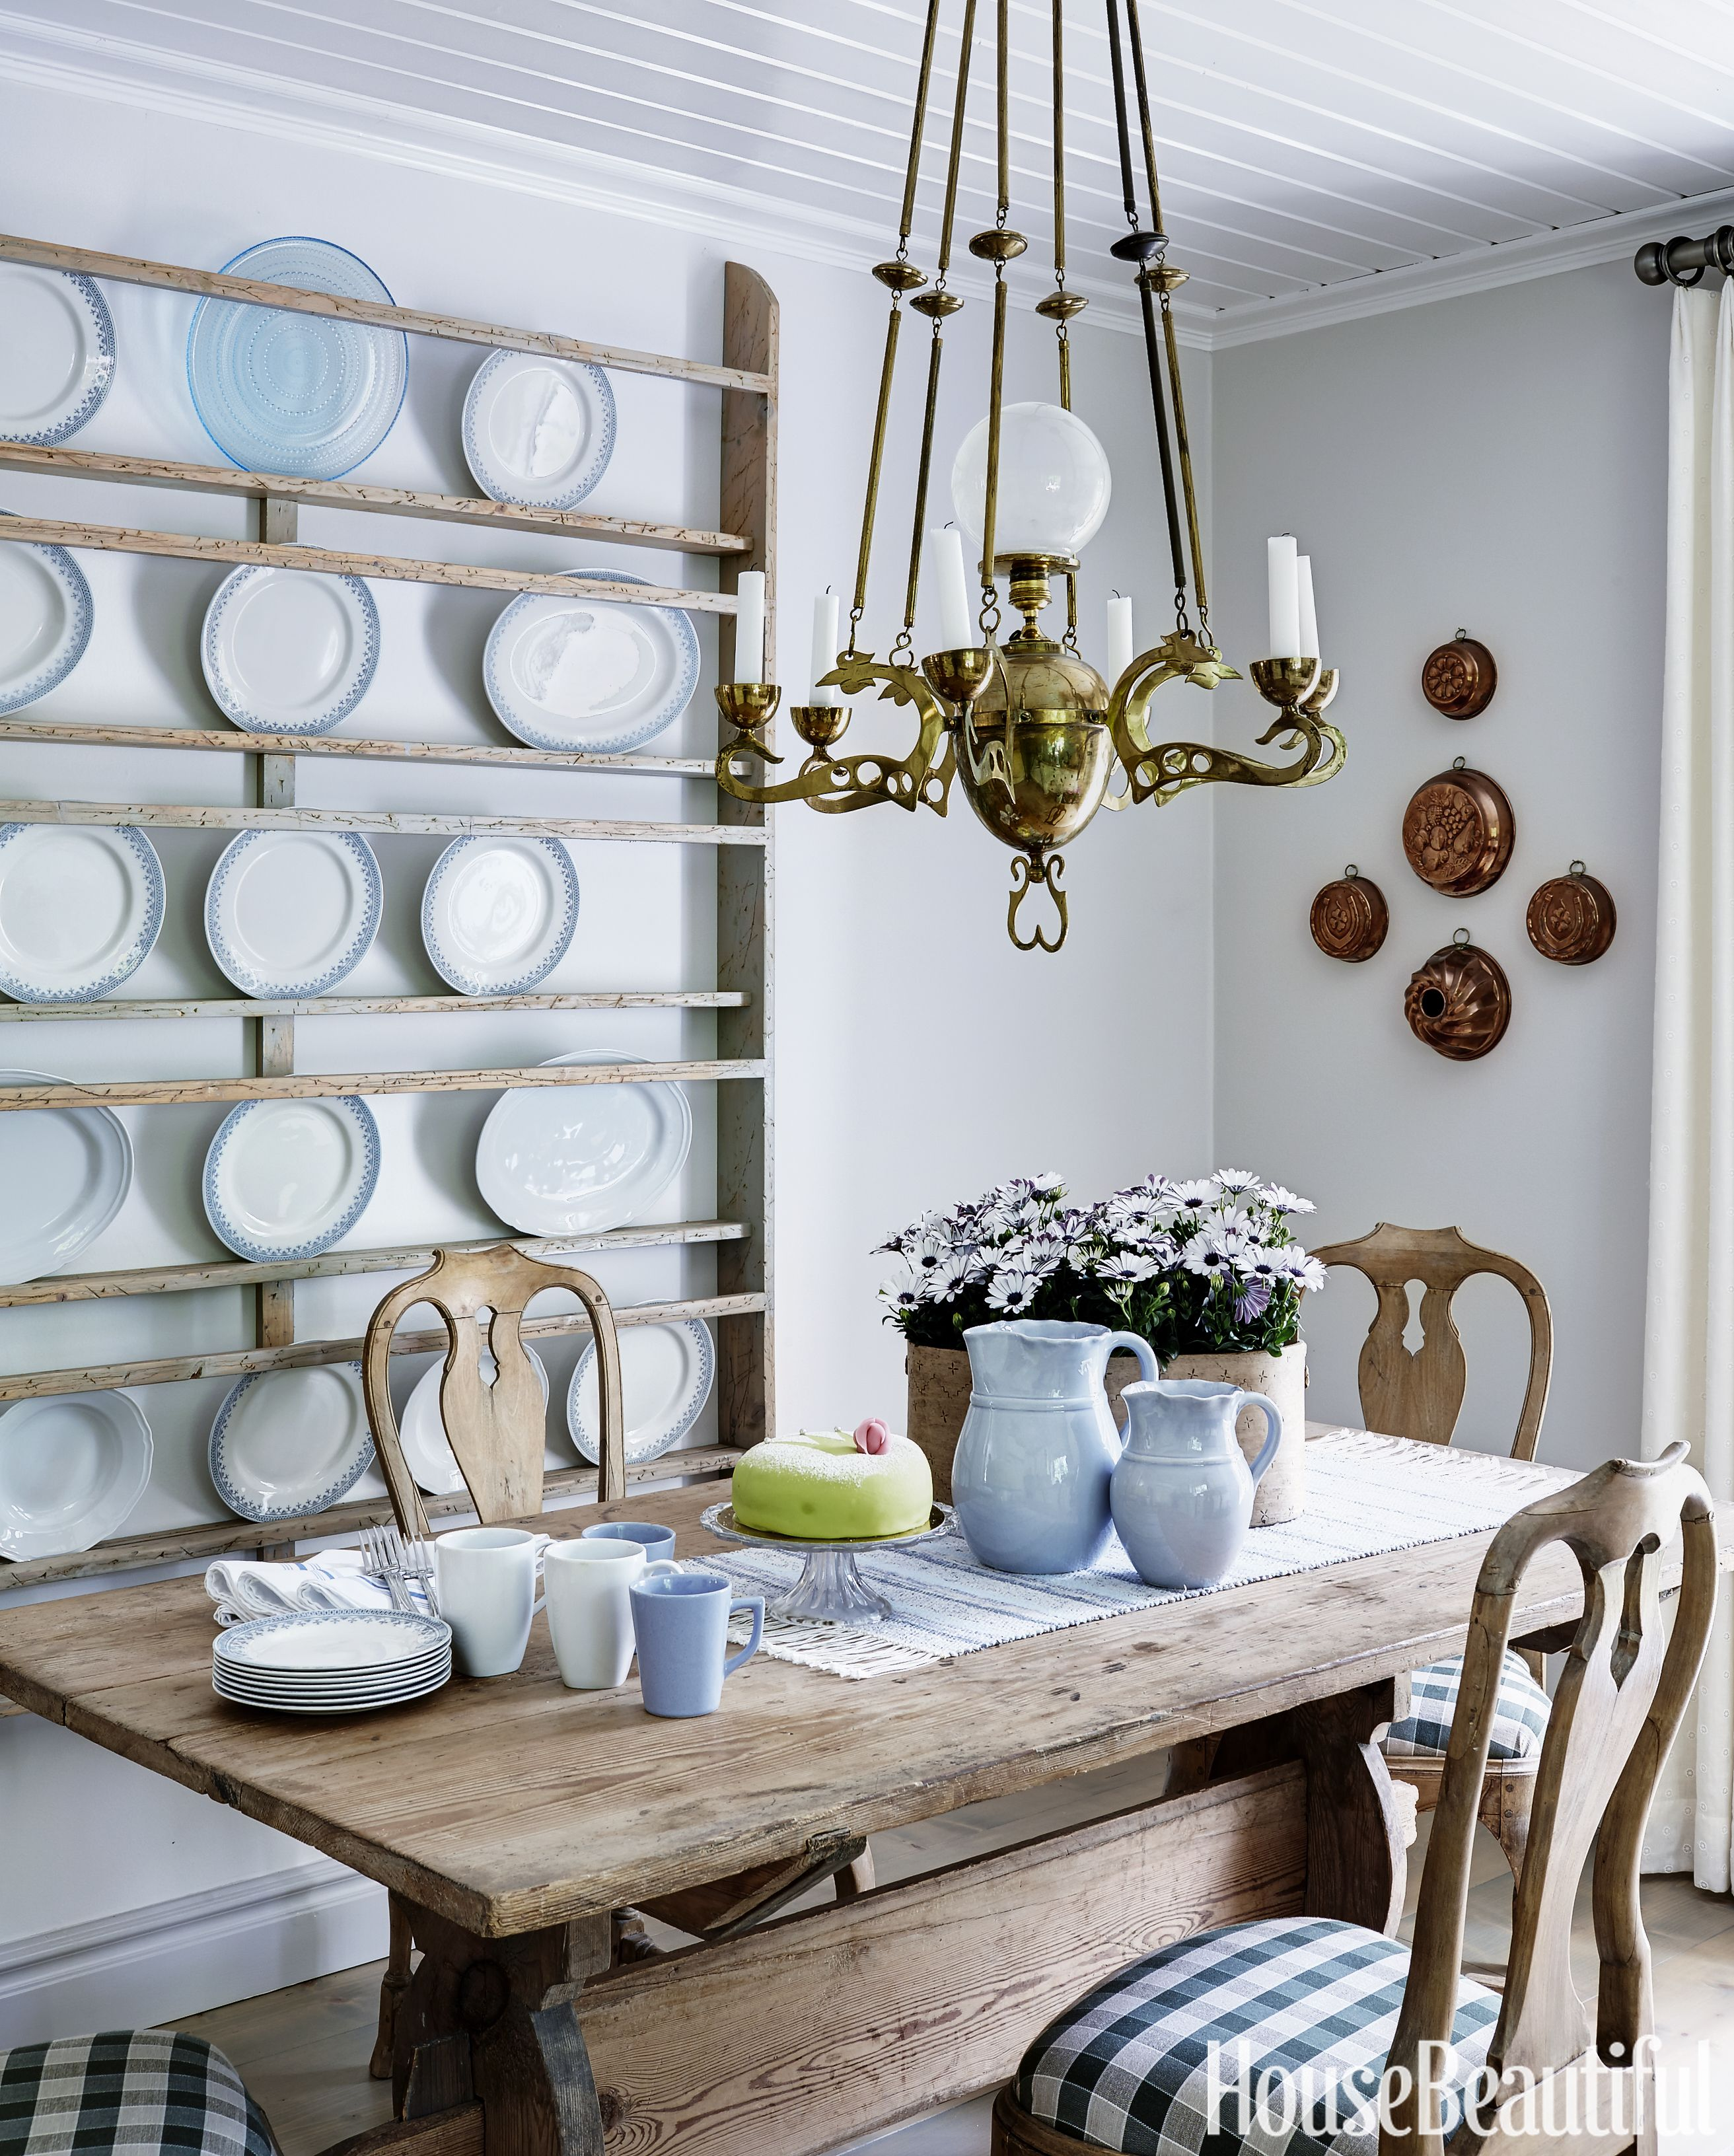 Swedish Country Home Decor: This Home Will Convince You To Decorate Swedish-Style